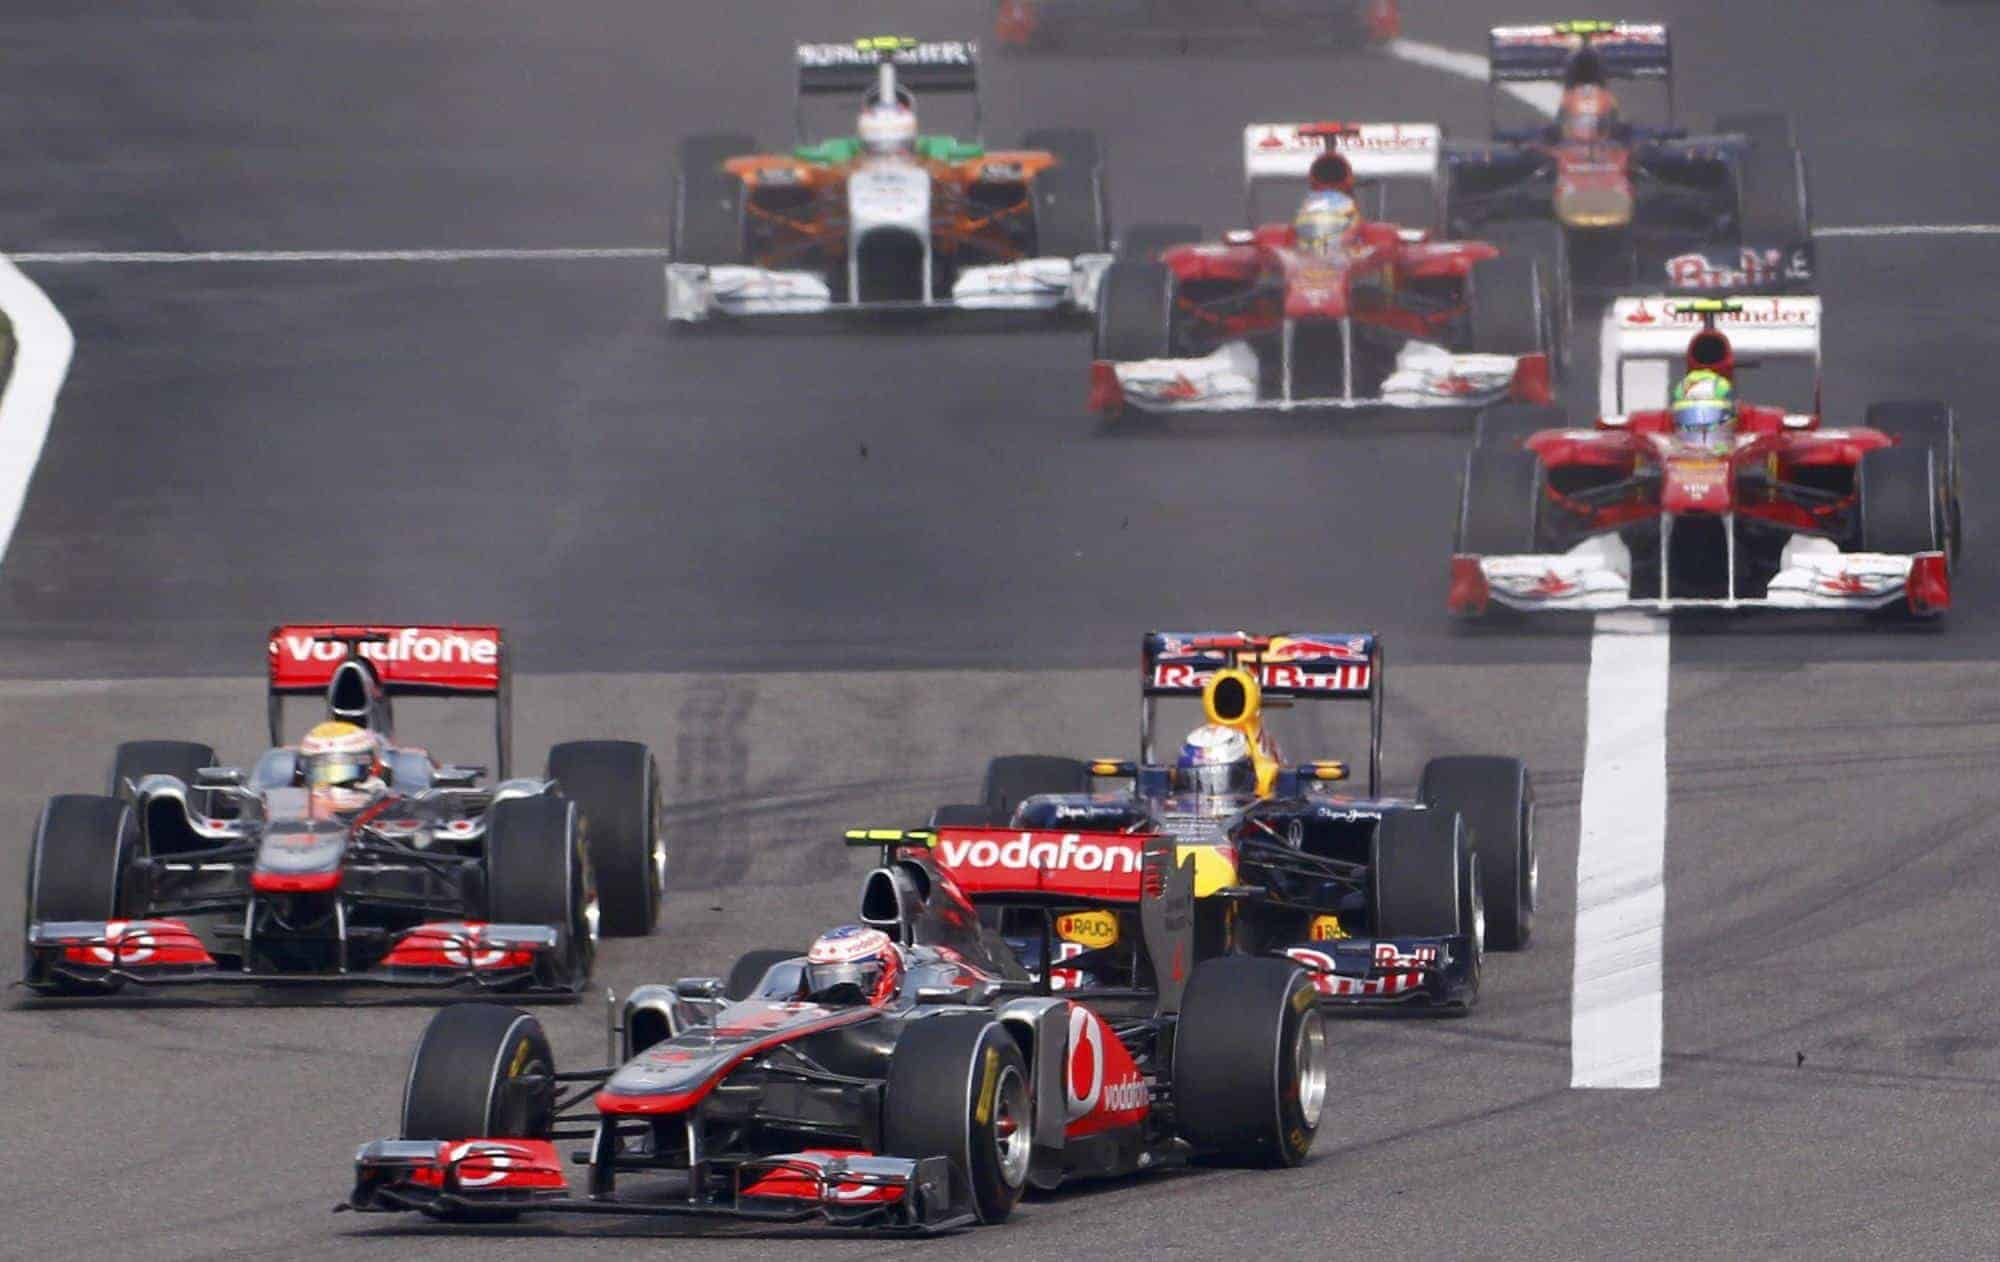 Chinese GP F1 2011 start of the race Button leads Vettel Hamilton Photo RTLde